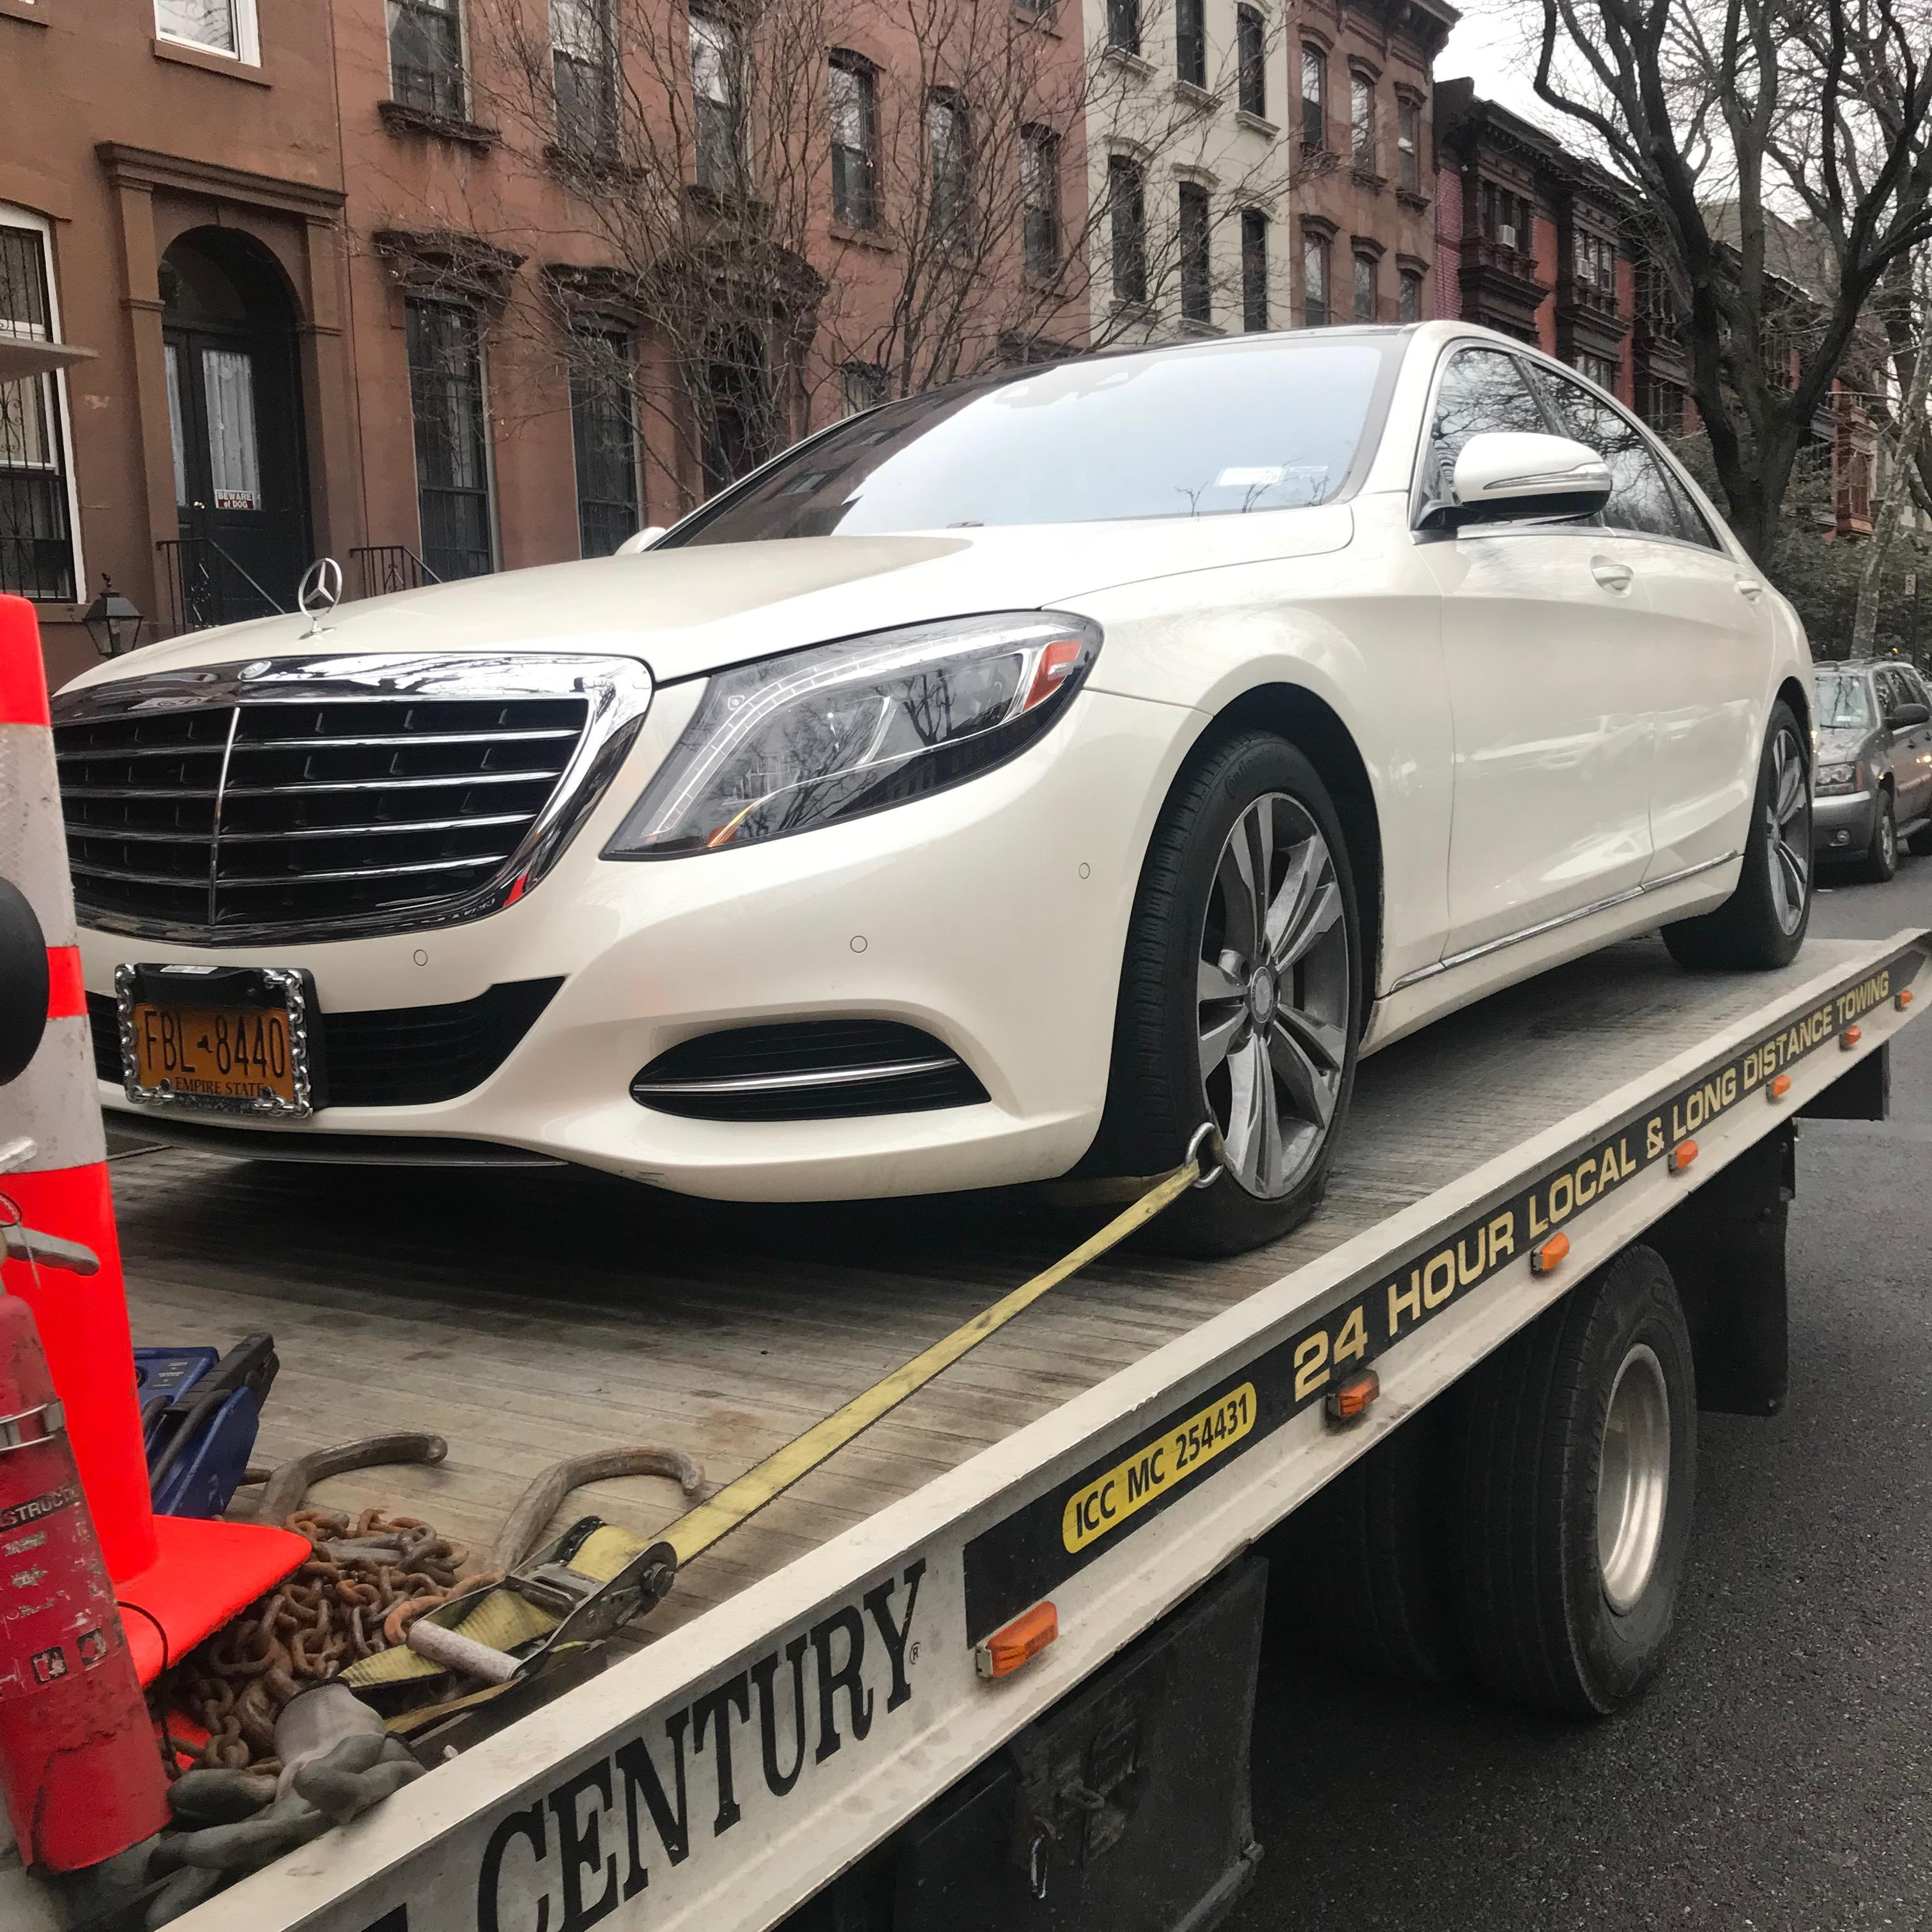 Cheaptowing.NYC - New York, NY 10036 - (212)222-3800 | ShowMeLocal.com